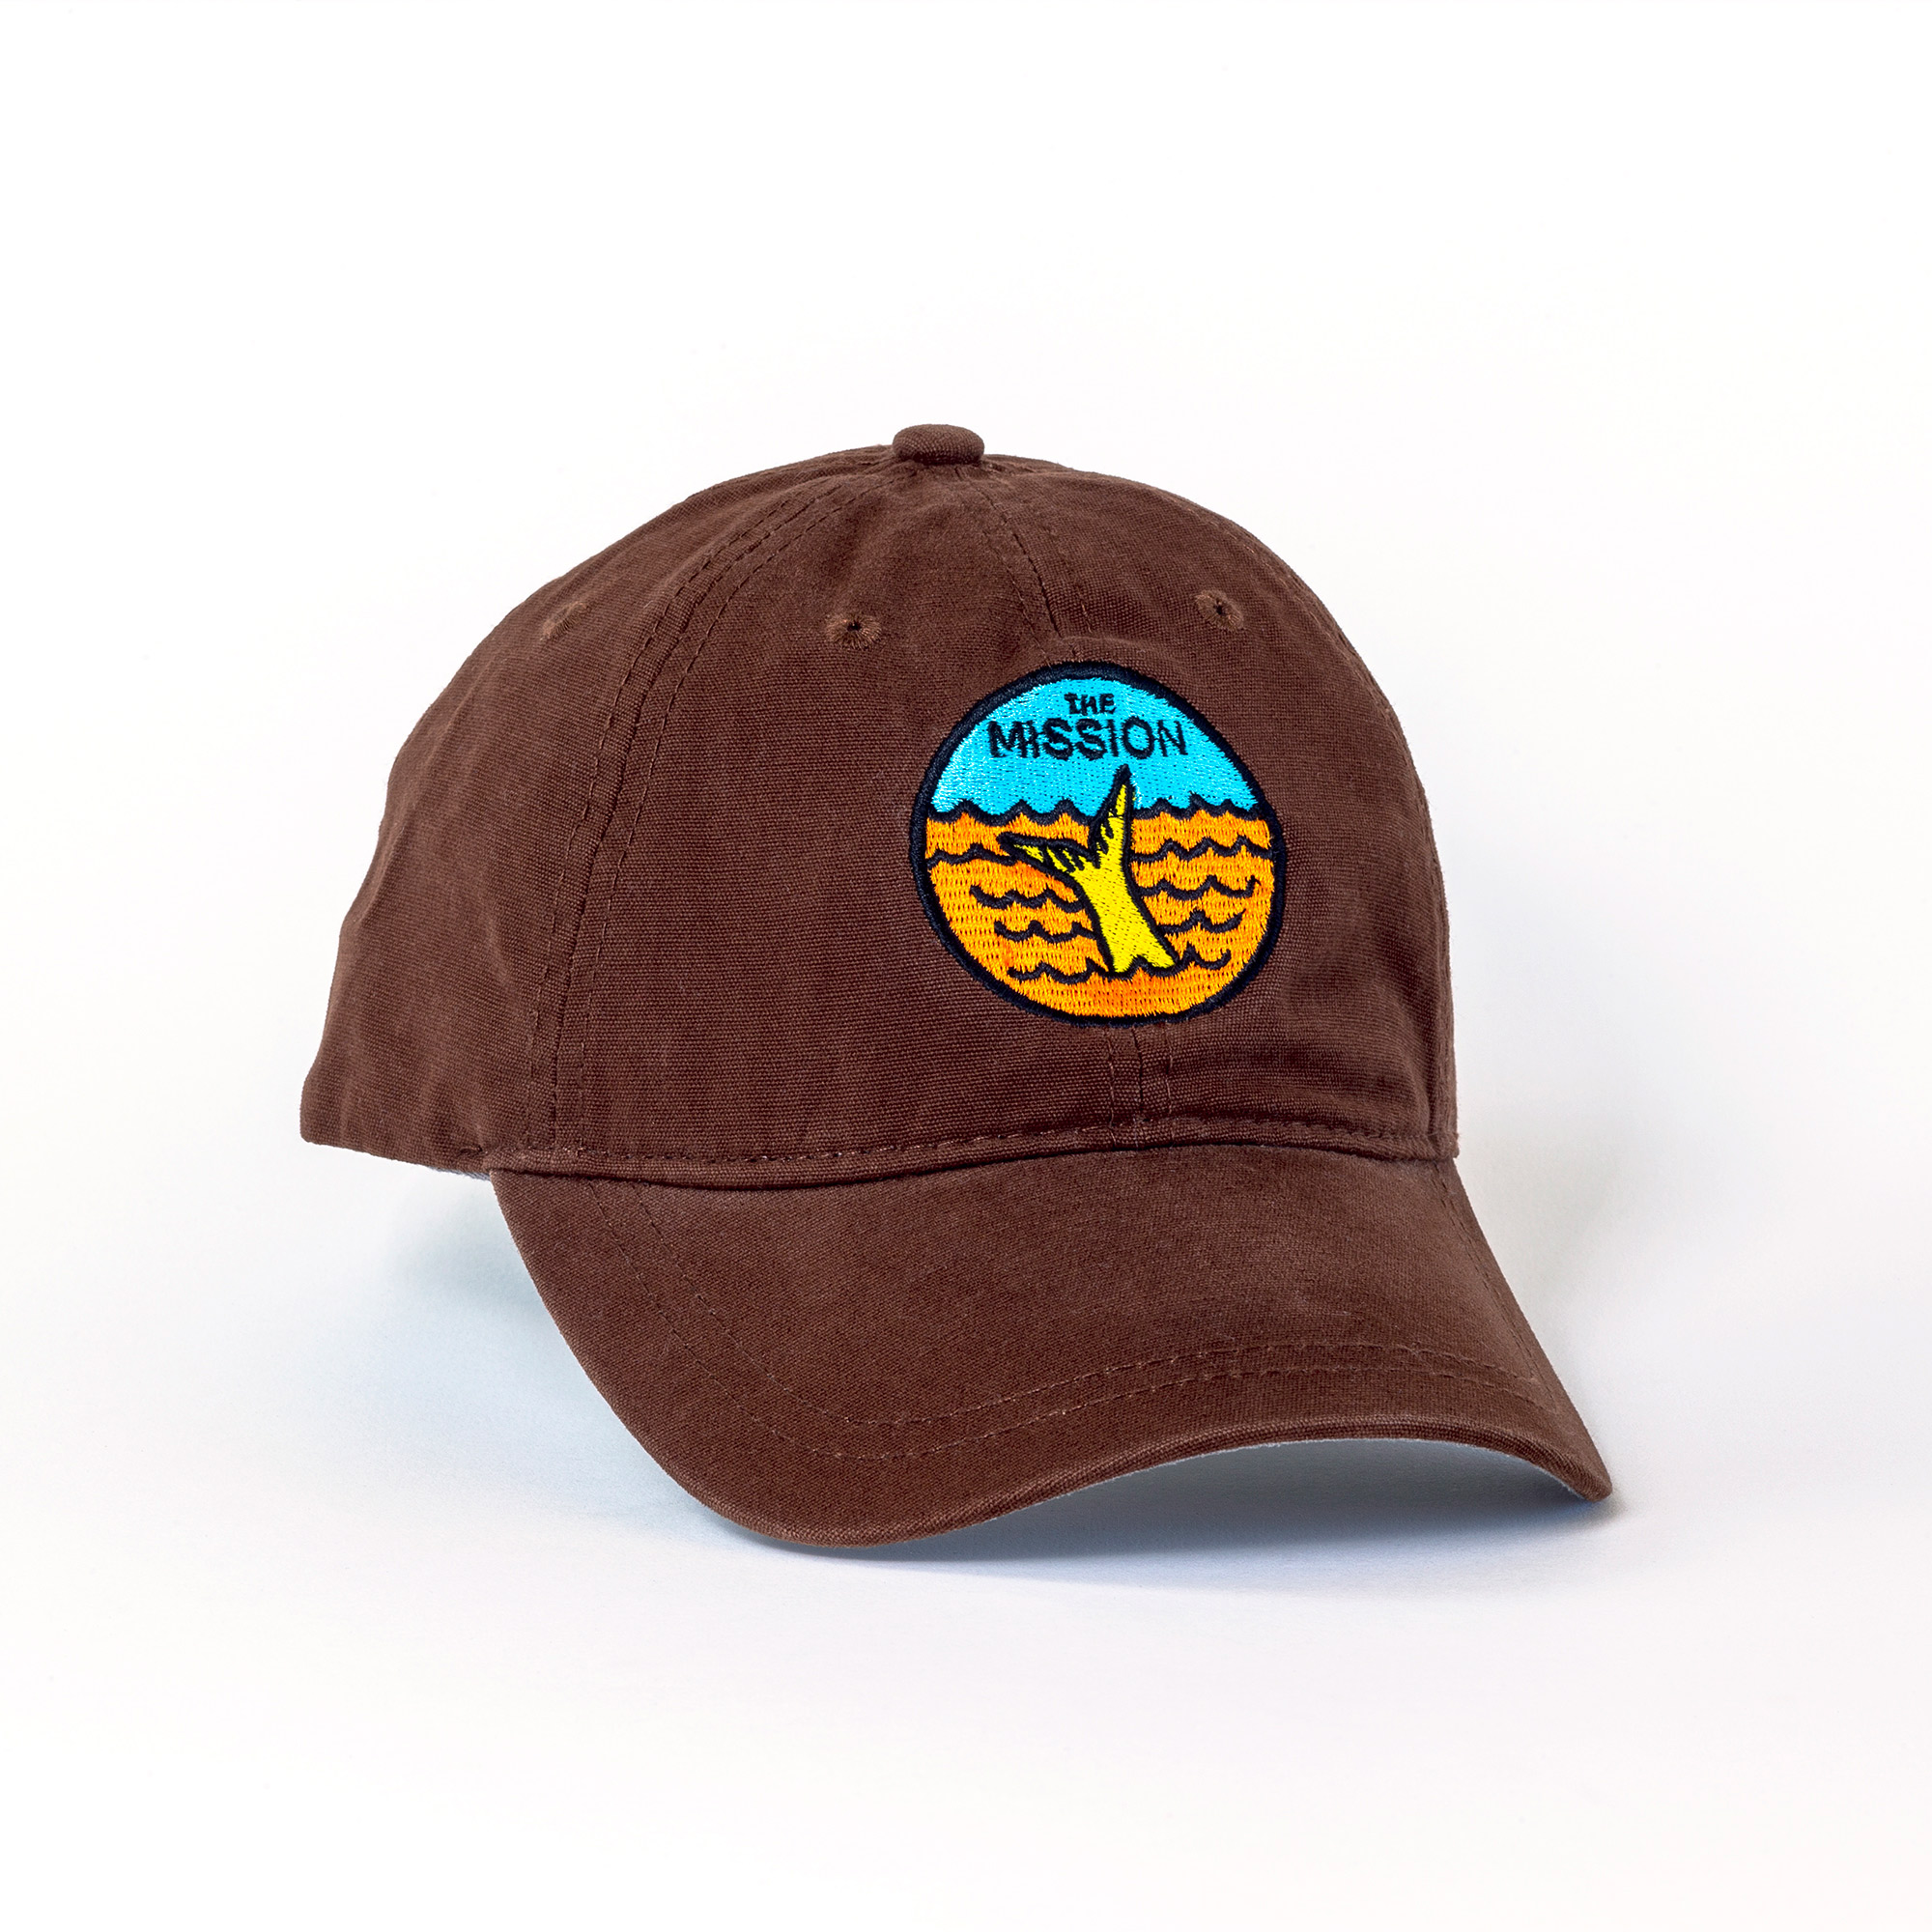 The Yella Fella dad cap